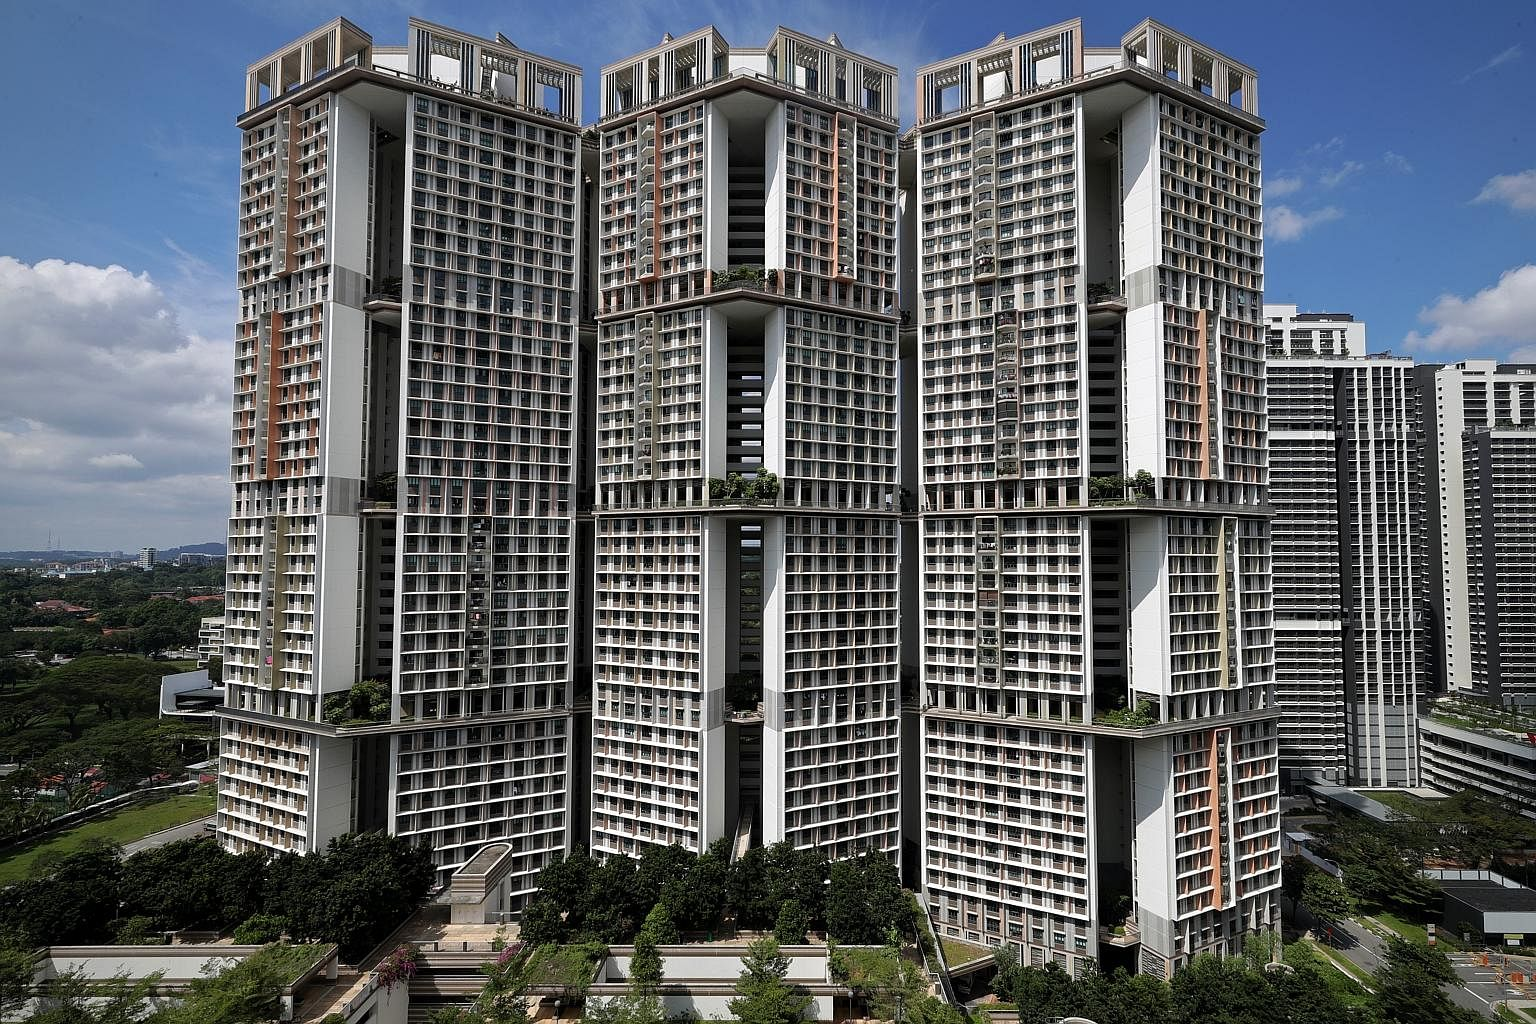 The unique Y-shaped Block 53 Toa Payoh Lorong 5, as seen from Gem Residences. The block w